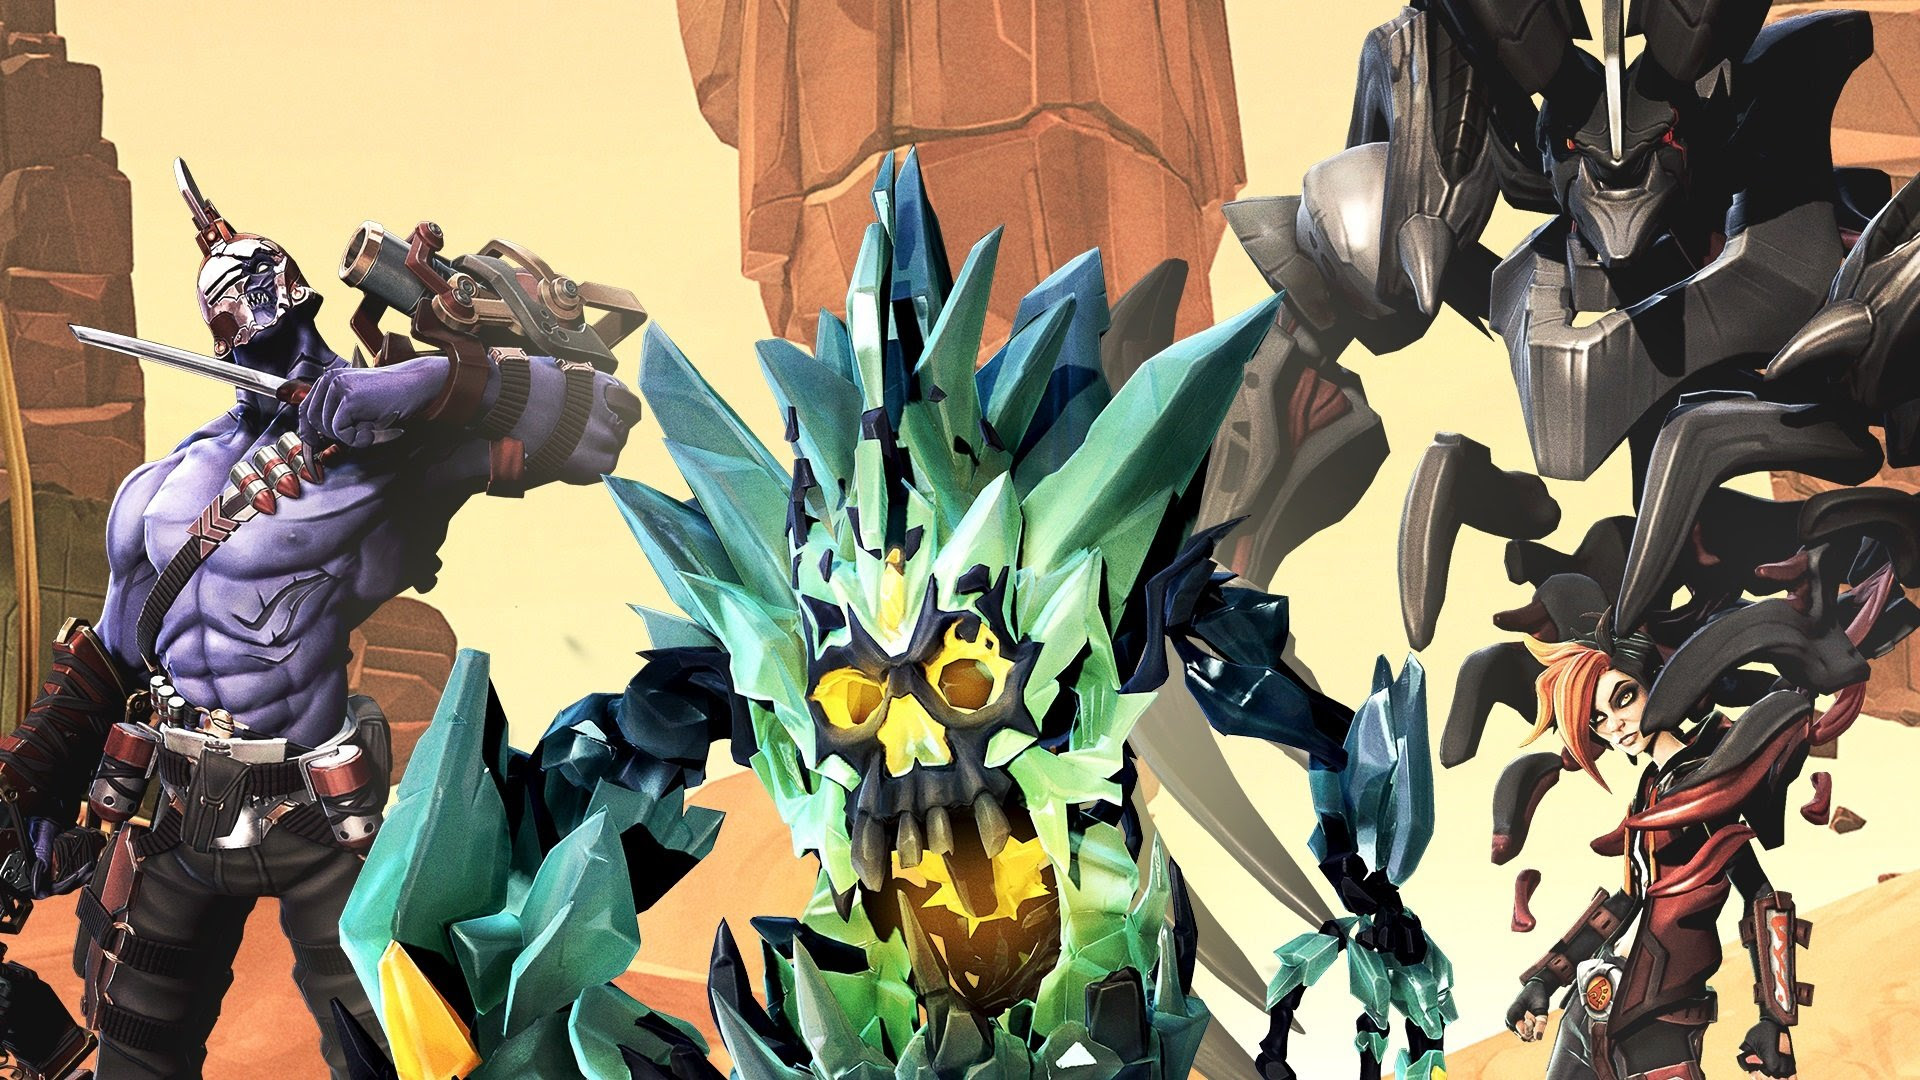 Battleborn gets a pseudo free-to-play option screenshot